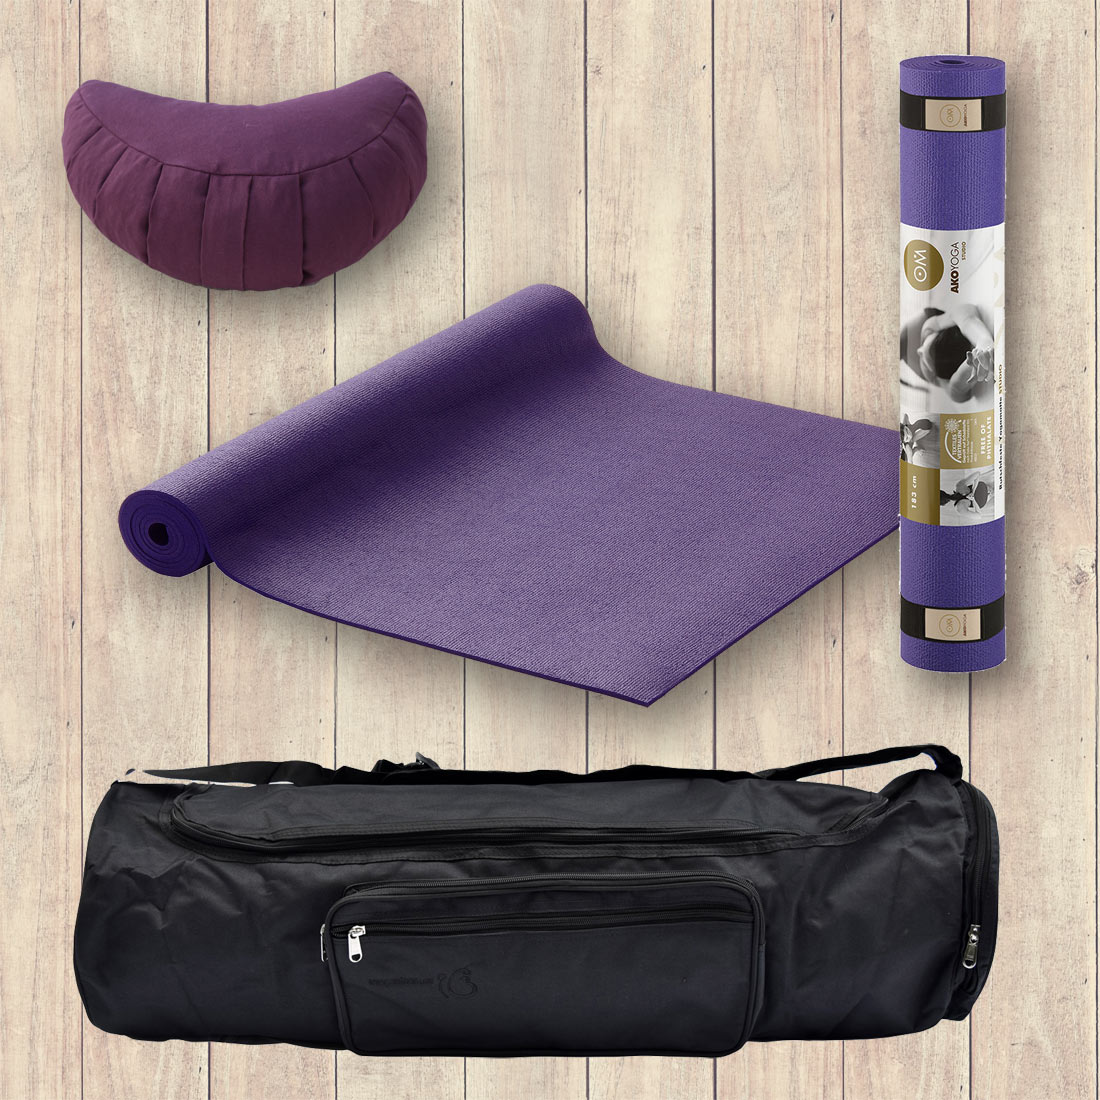 Yoga Set for Beginners, Purple, 3 Yoga items